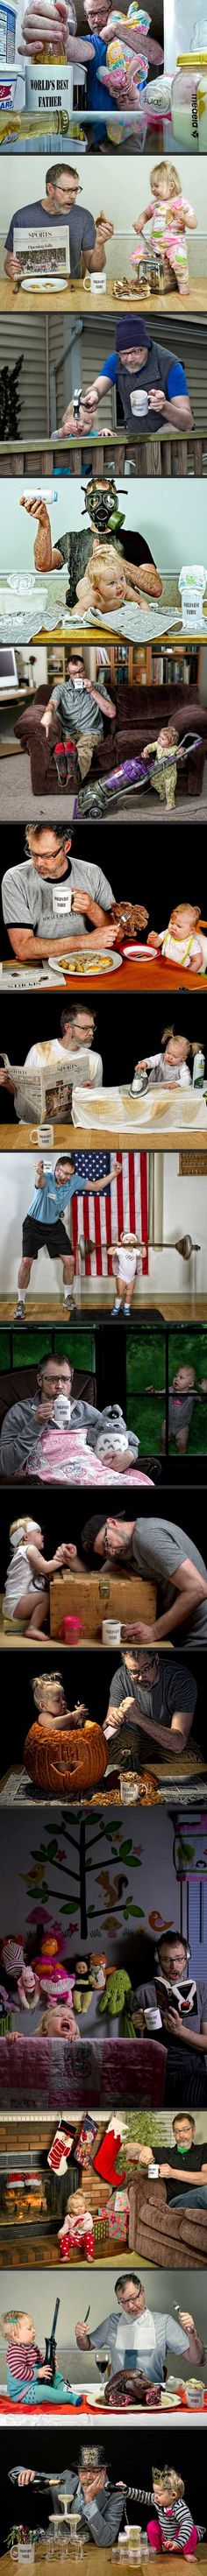 Father of the year | Funny Pictures, Quotes, Pics, Photos, Images. Videos of Really Very Cute animals.